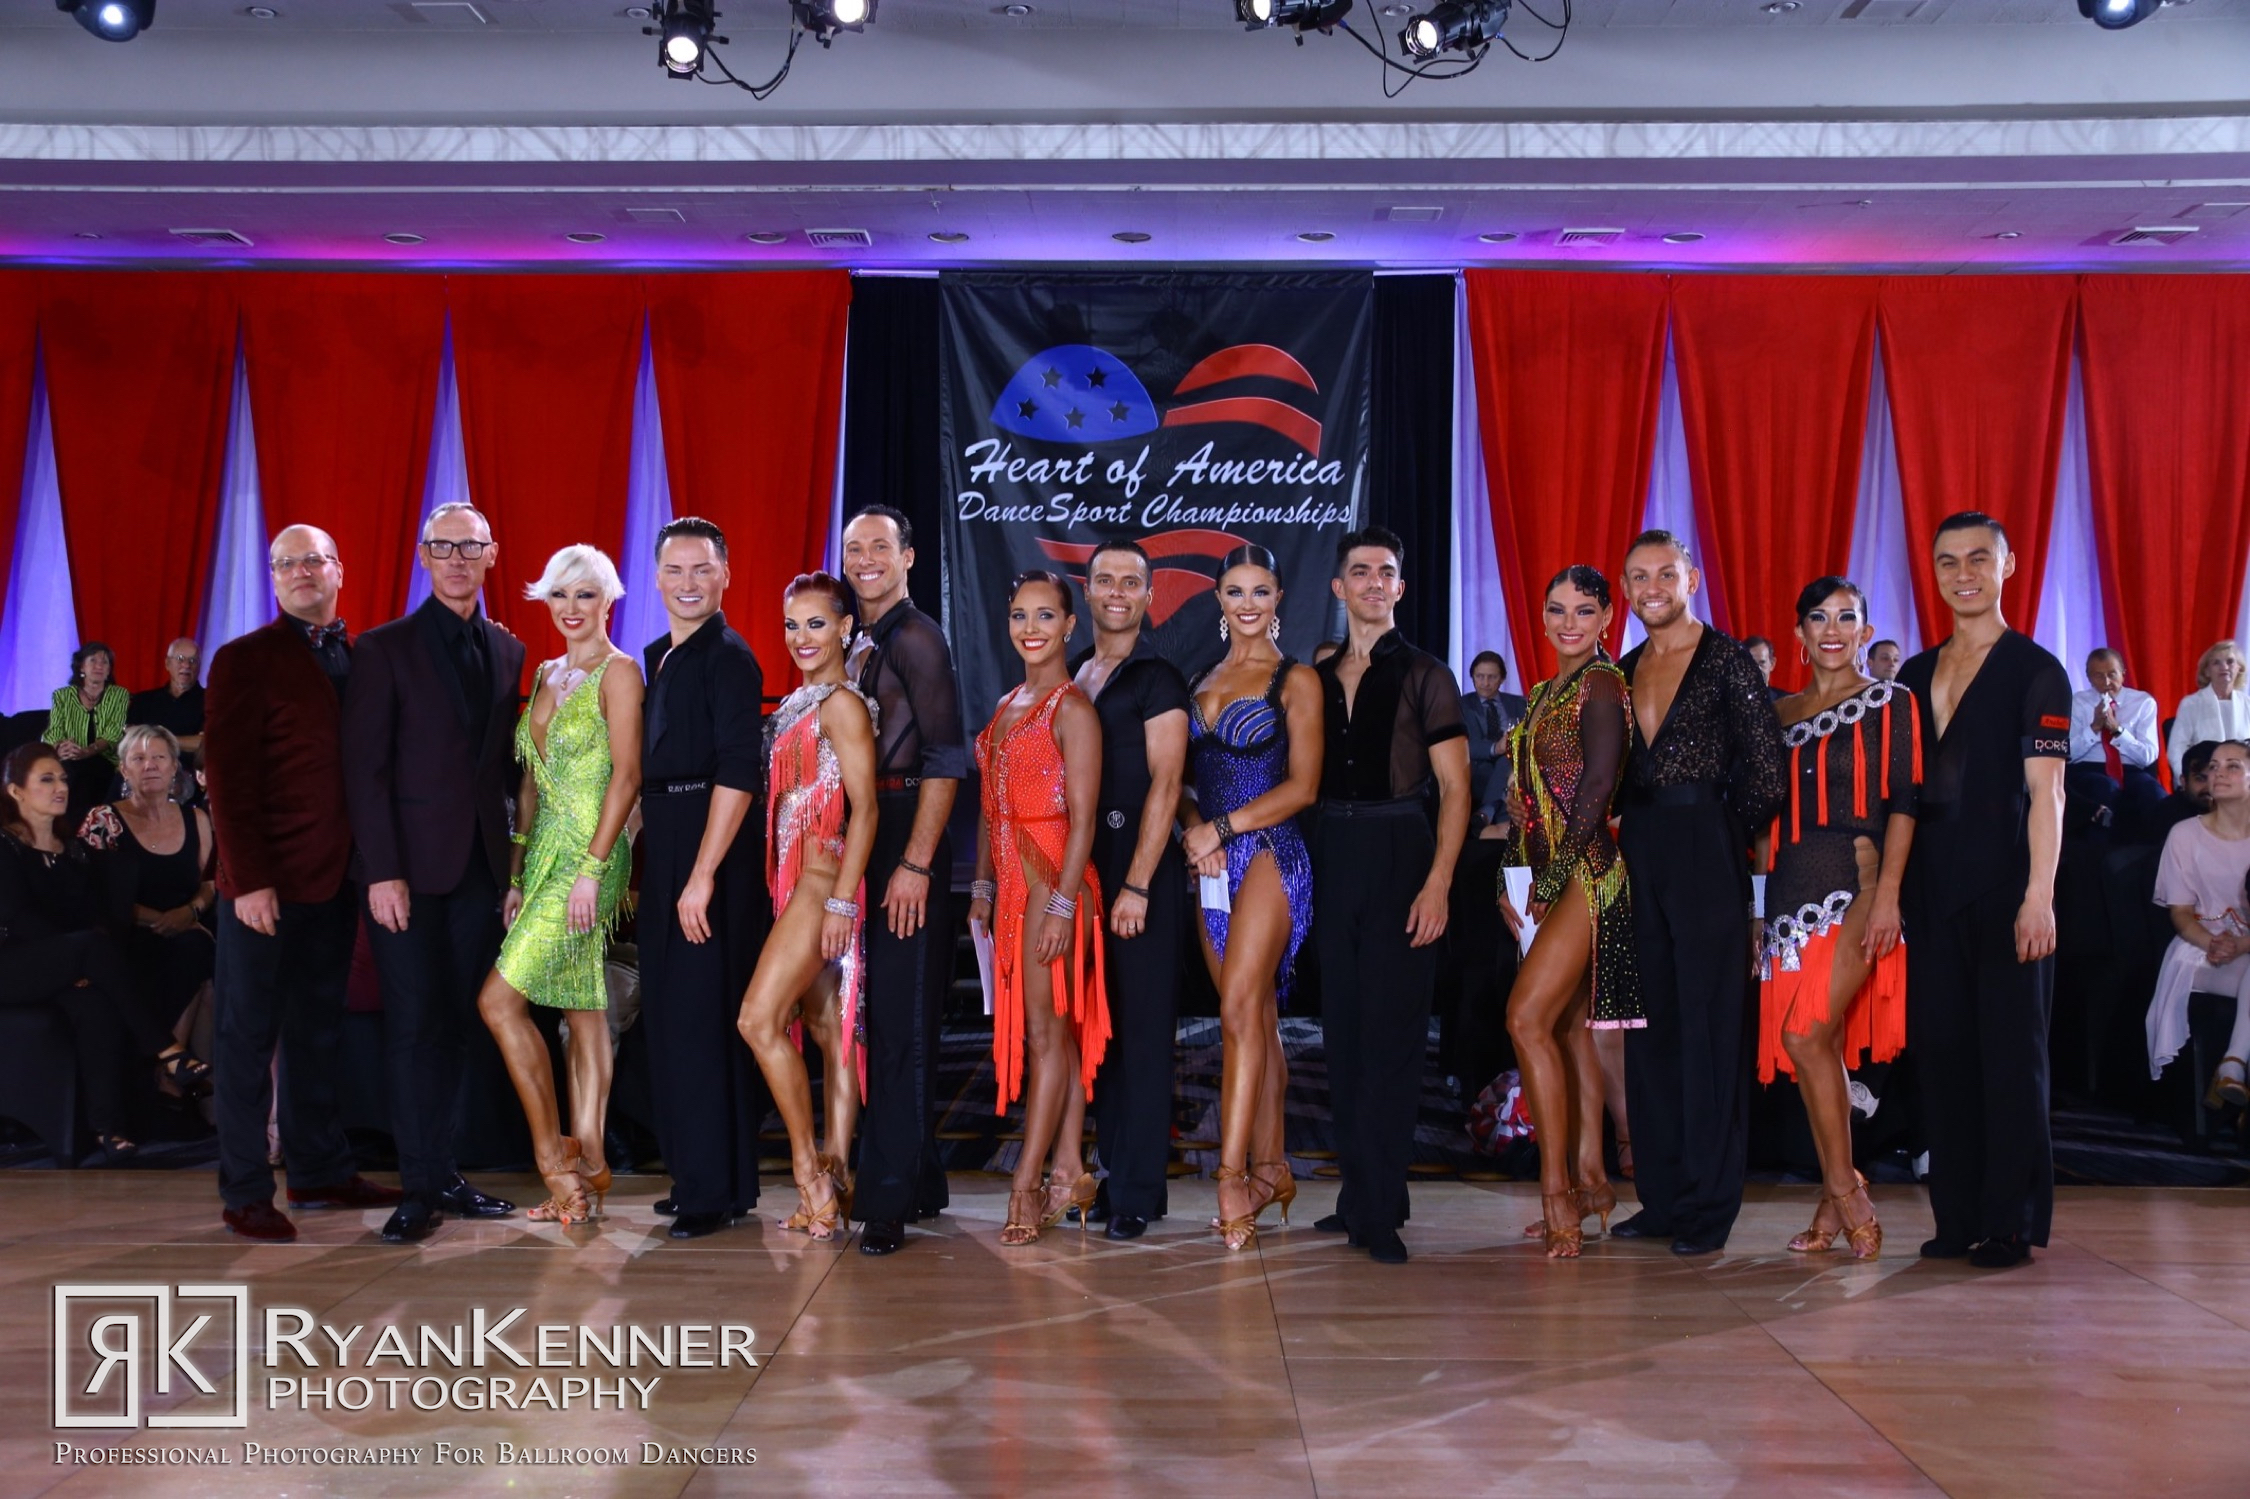 OPEN PROFESSIONAL - AMERICAN RHYTHM - Congratulations to our 2019 champions